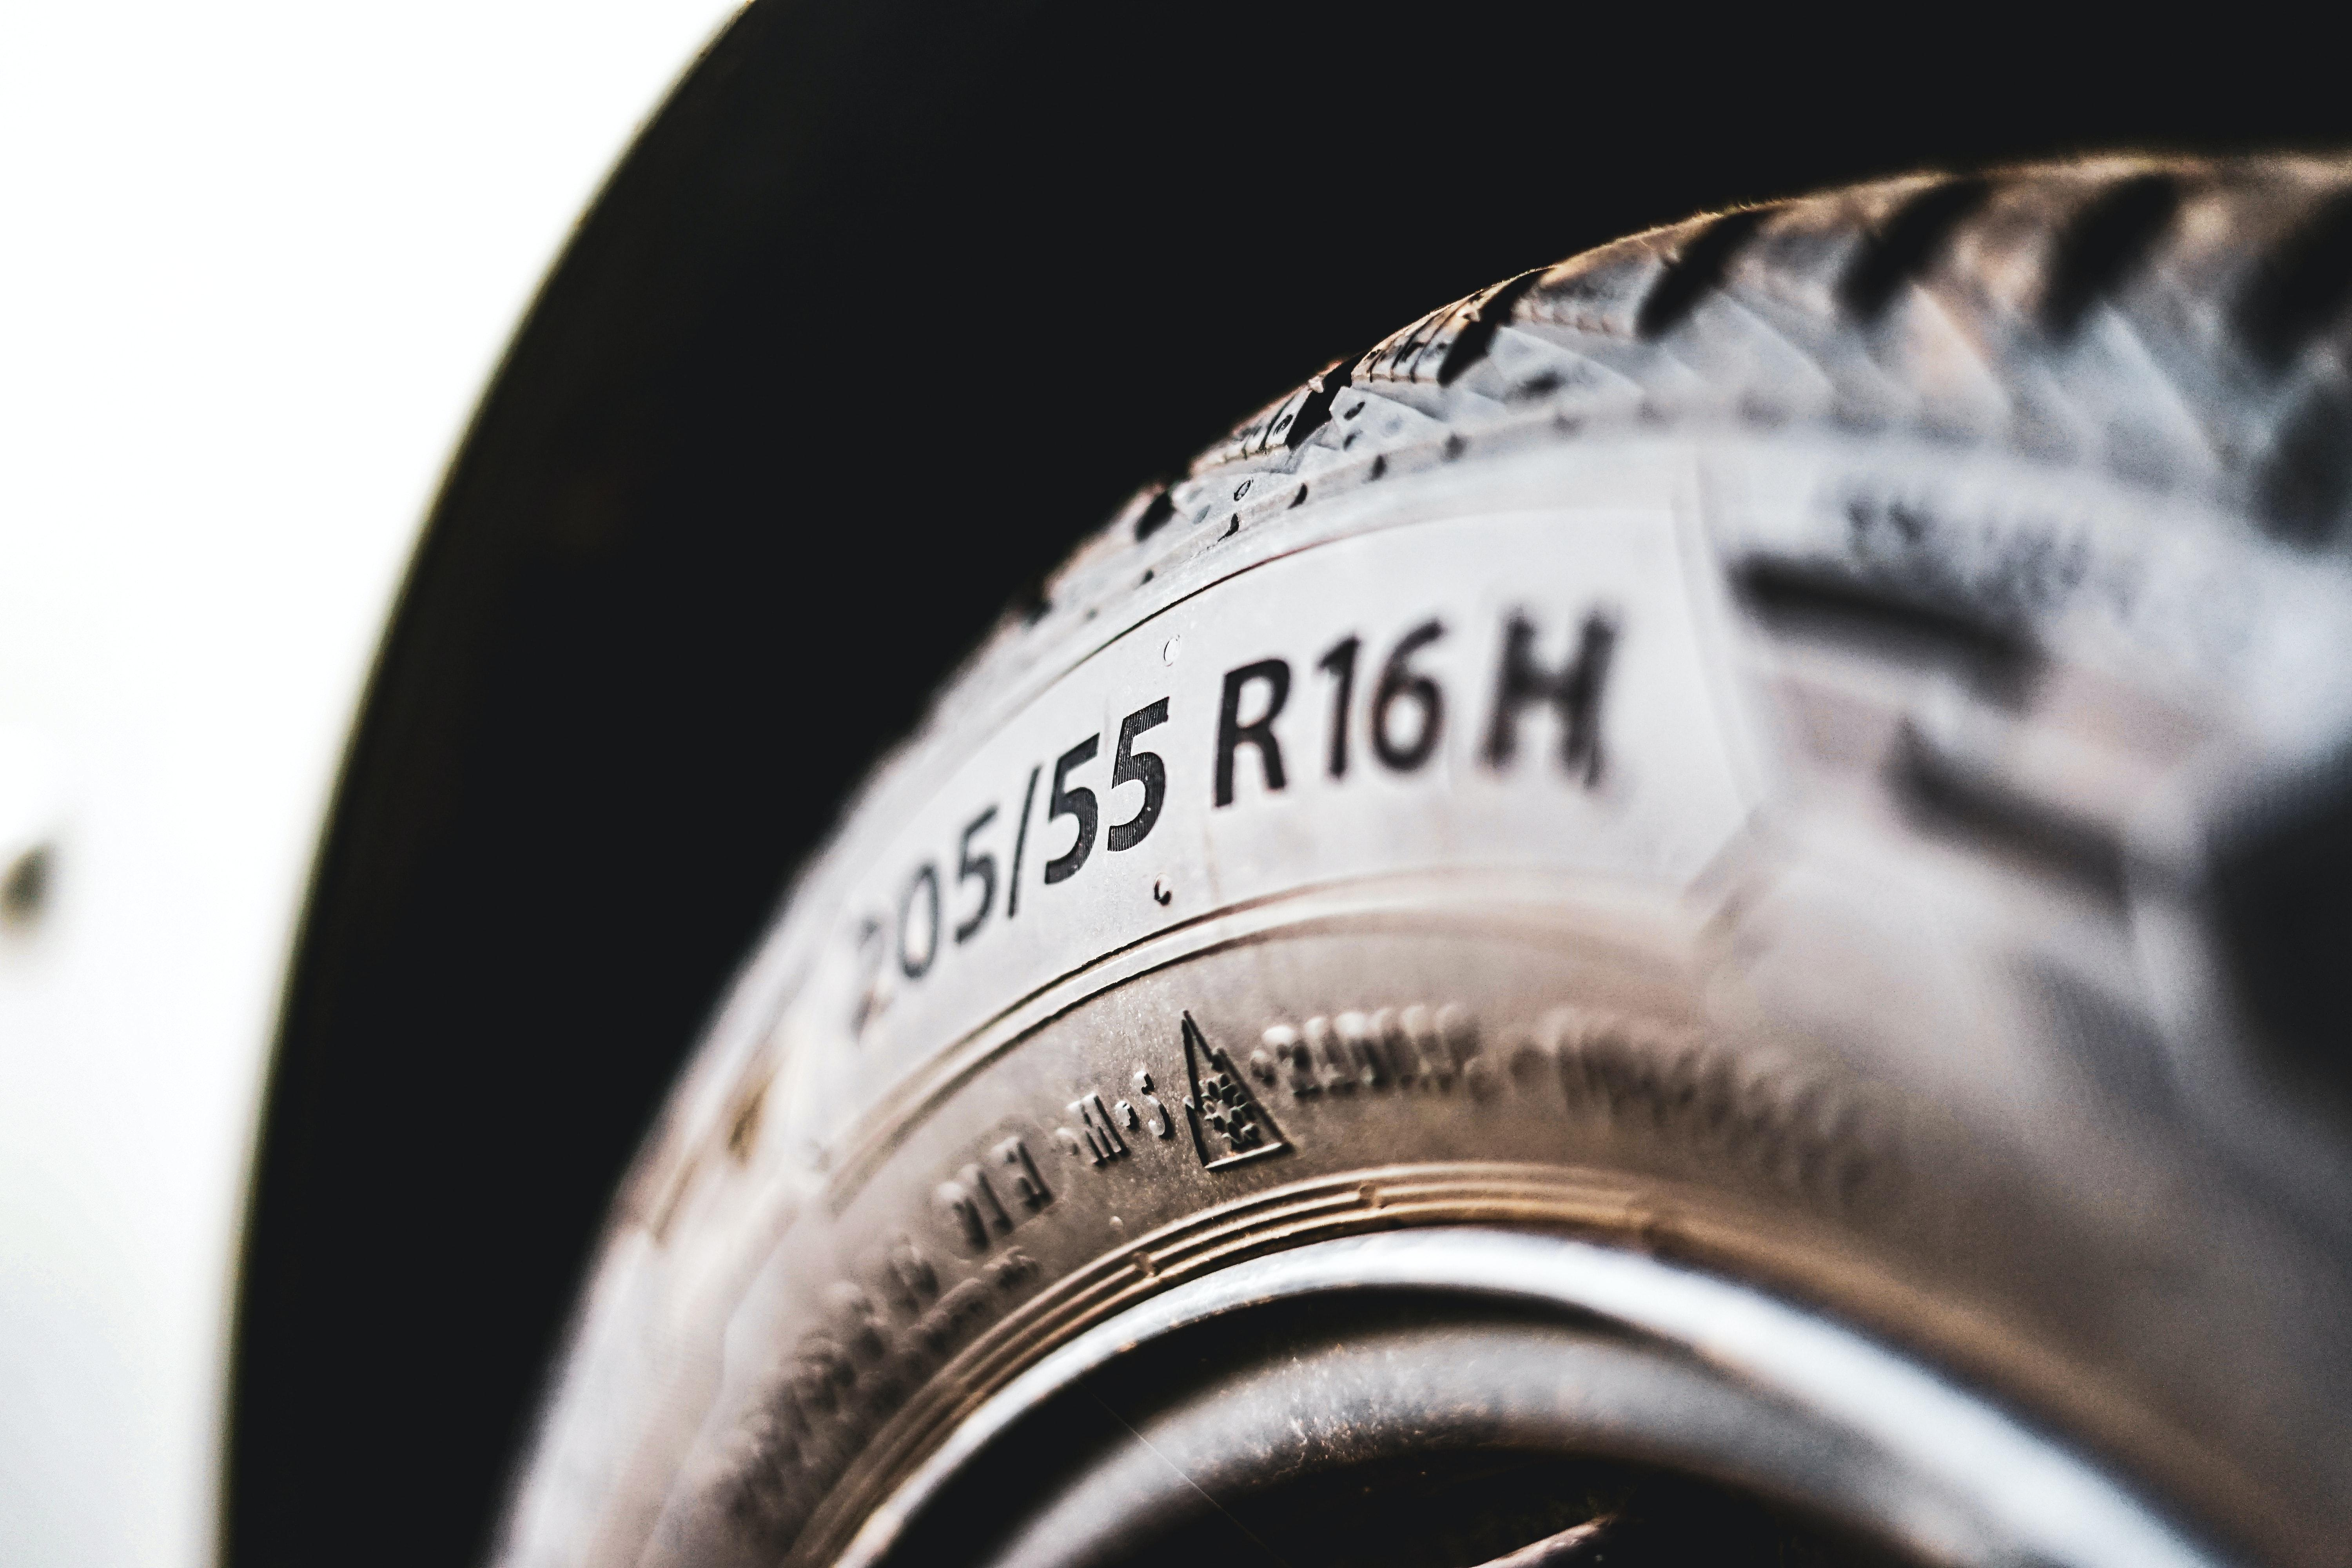 Sidewall of a touring tire.